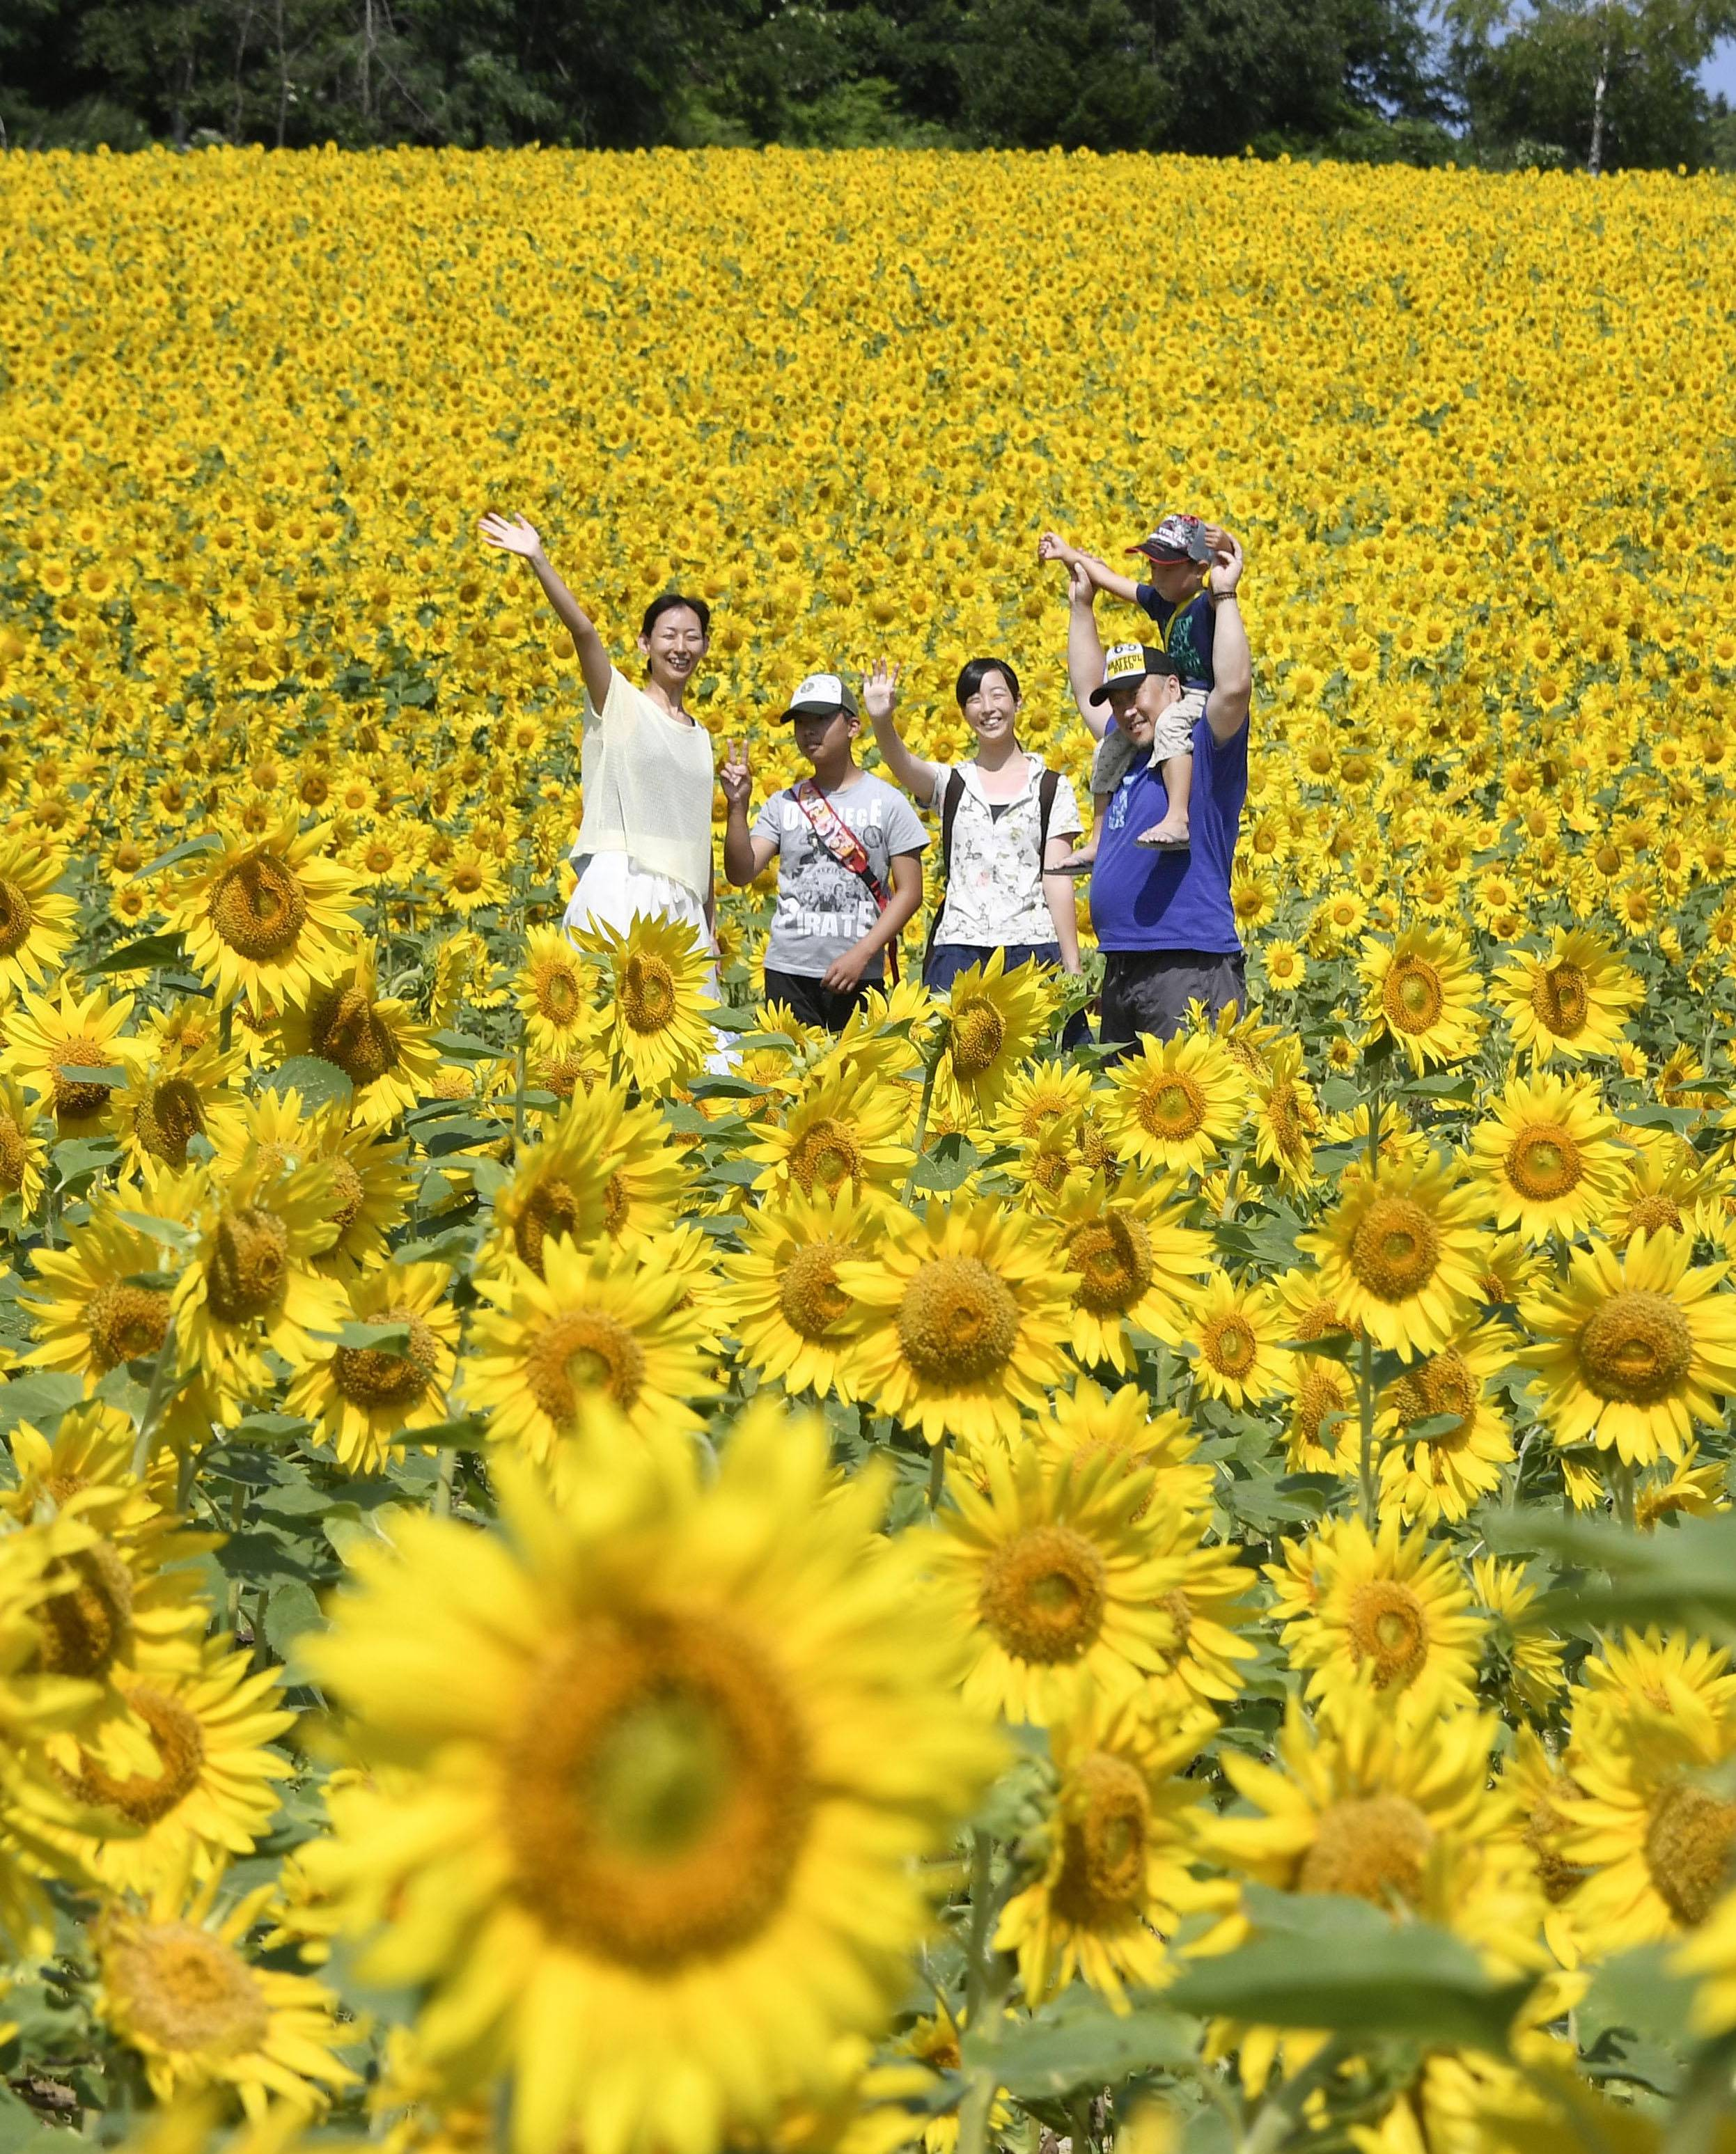 Giant sunflower field in Hokkaido reeling in tourists | The Japan Times